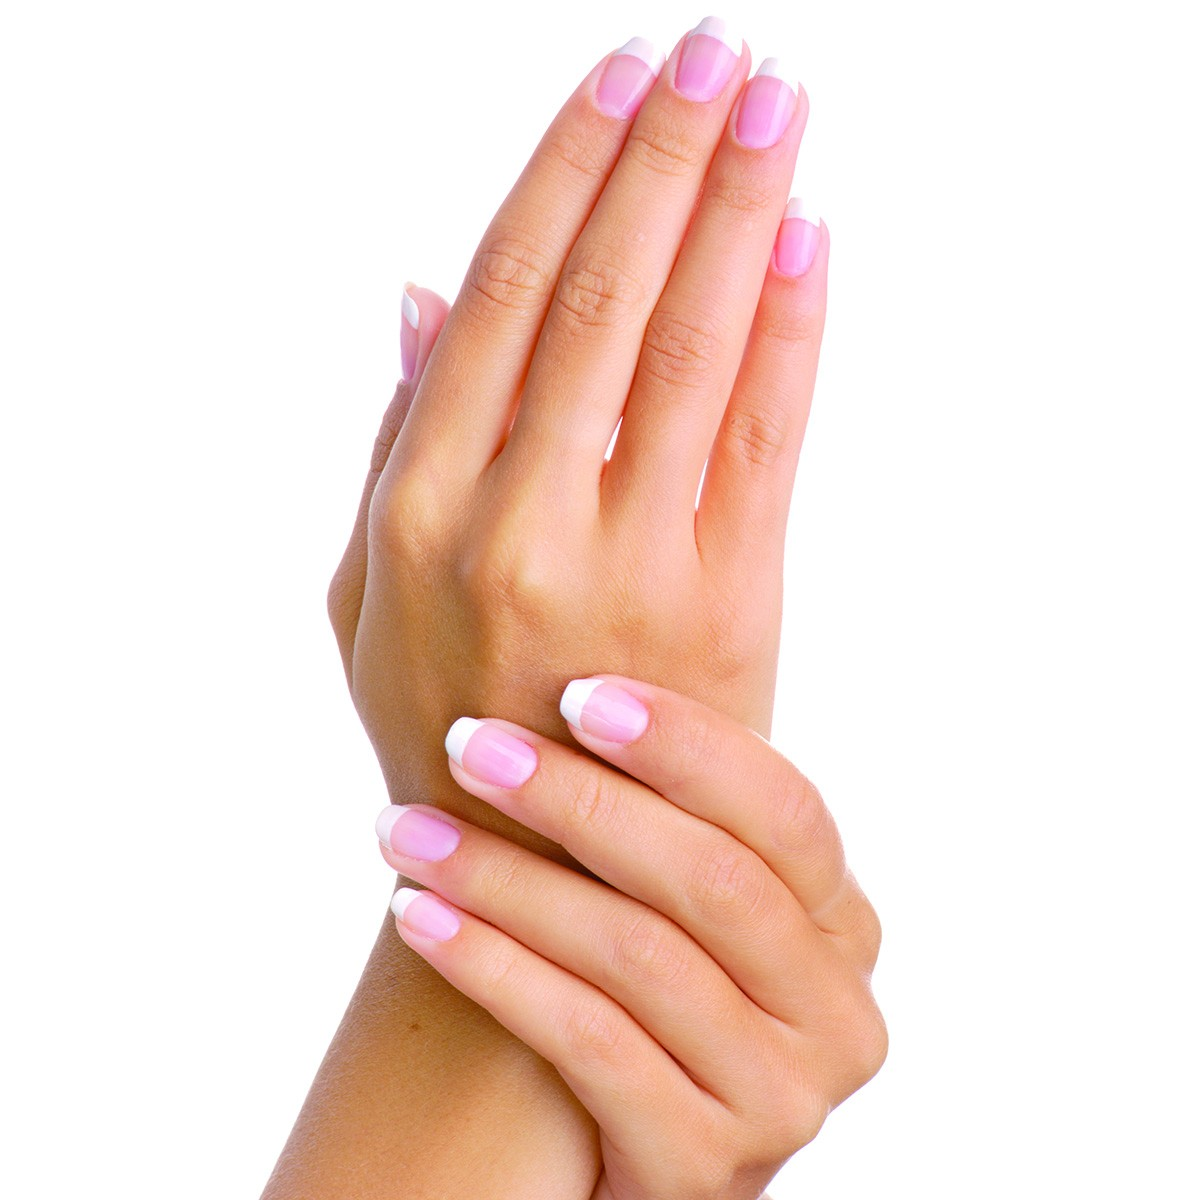 Nails clipart manicure Manicure clipart nail Aromatic Beauty